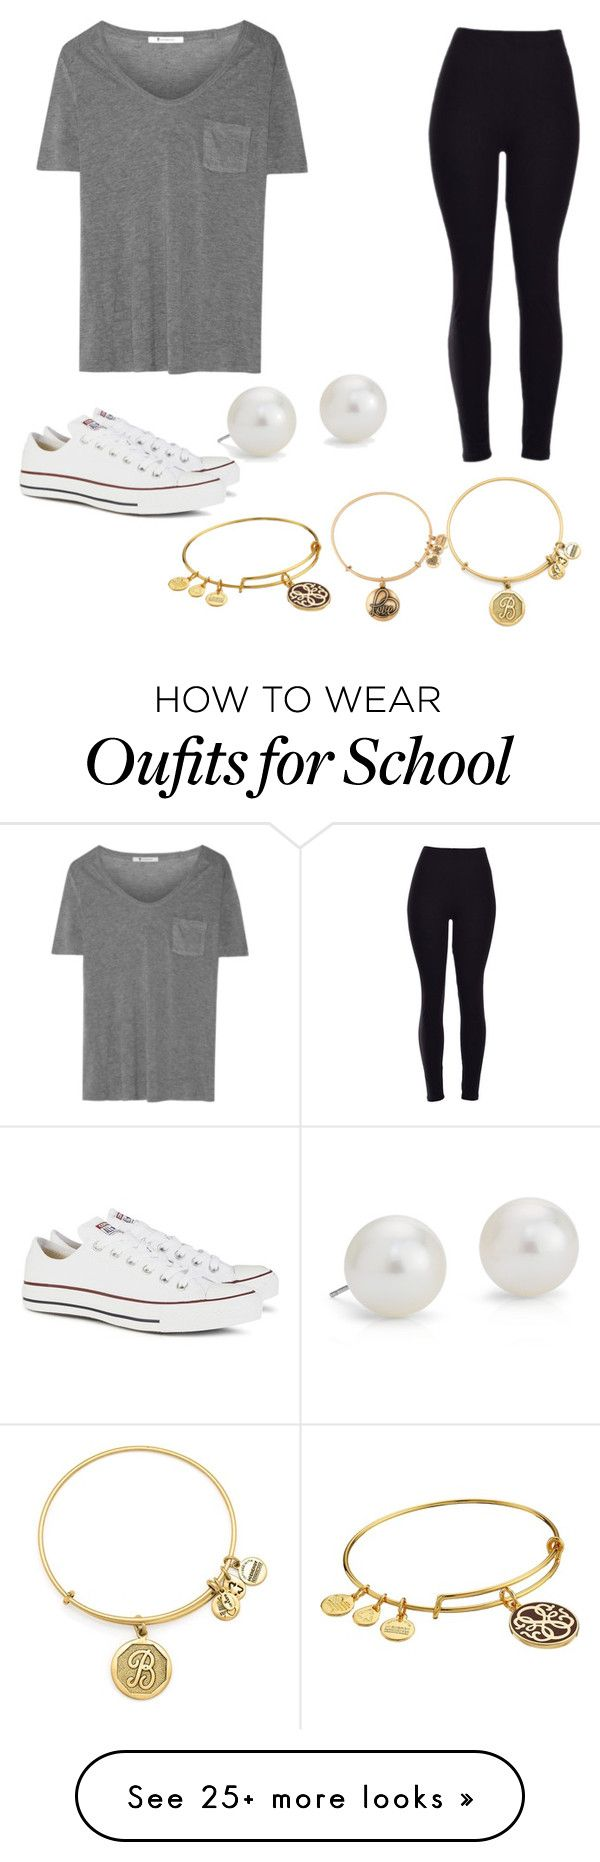 """Casual school day outfit!"" by brooke-betke on Polyvore featuring T By Alexander Wang, Converse, Blue Nile, Alex and Ani, women's clothing, women, female, woman, misses and juniors"